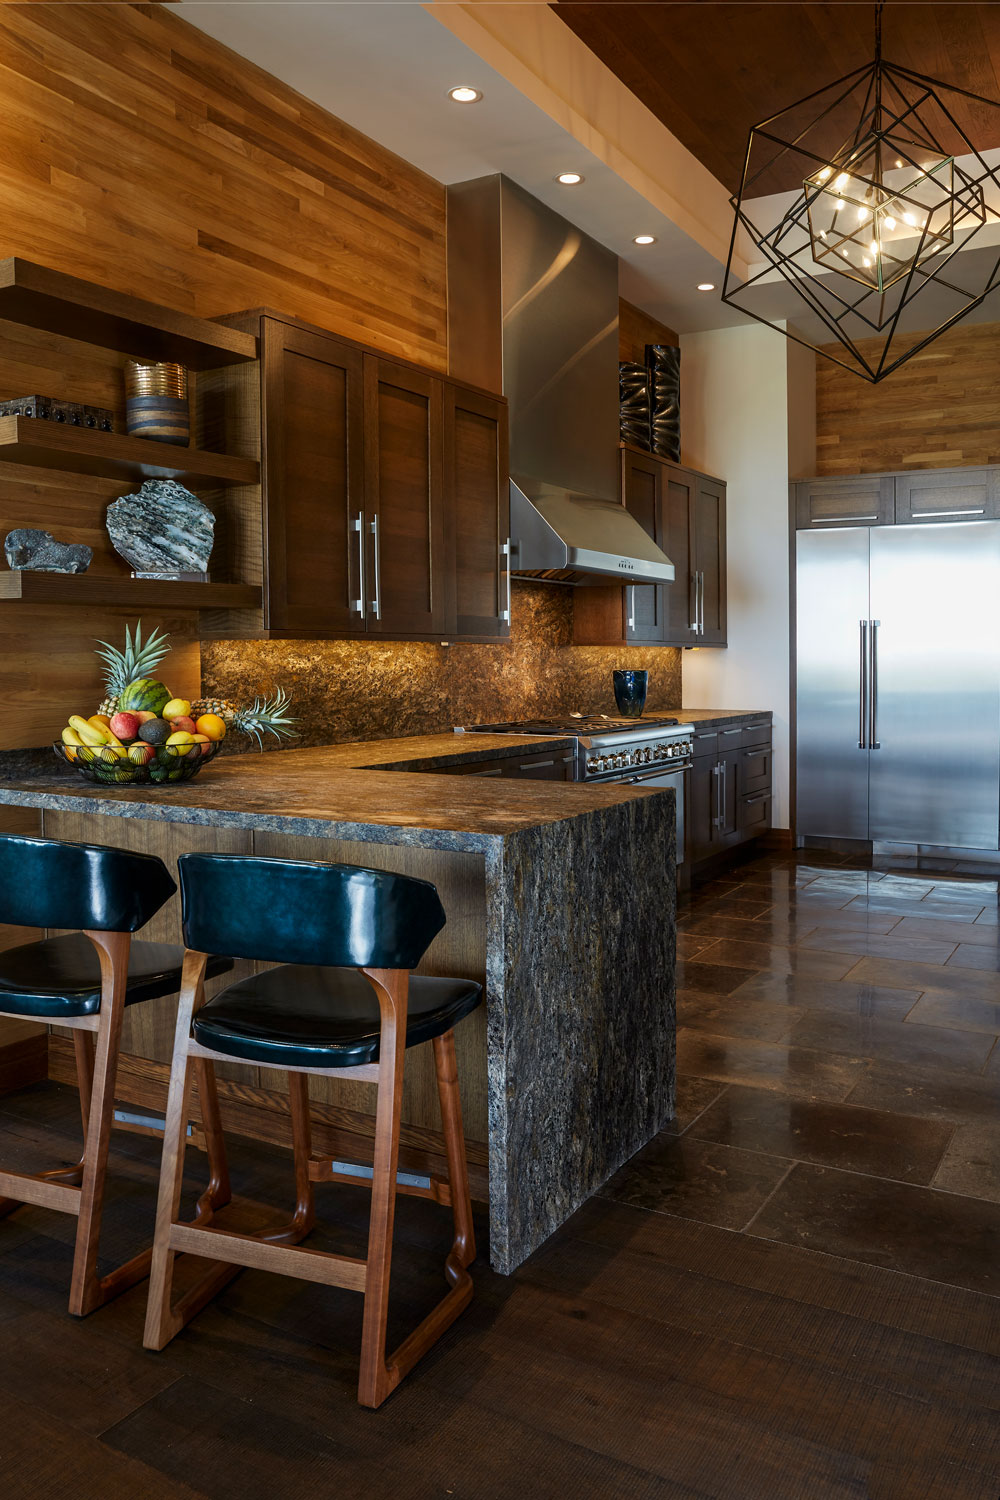 Wogan_Design_Interior_Design_Maui_009